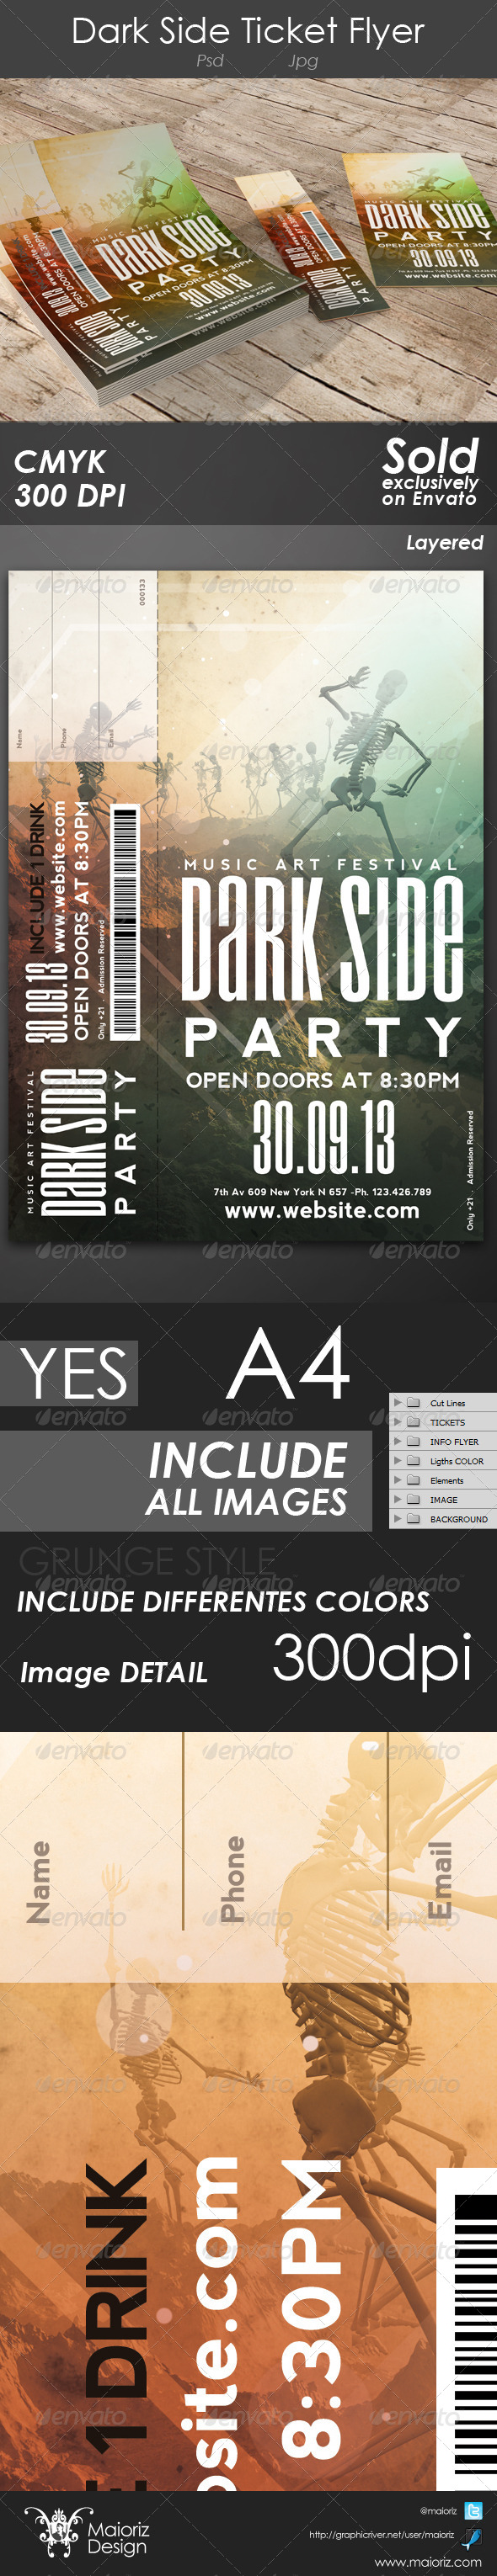 Dark Side Ticket Flyer - Miscellaneous Print Templates